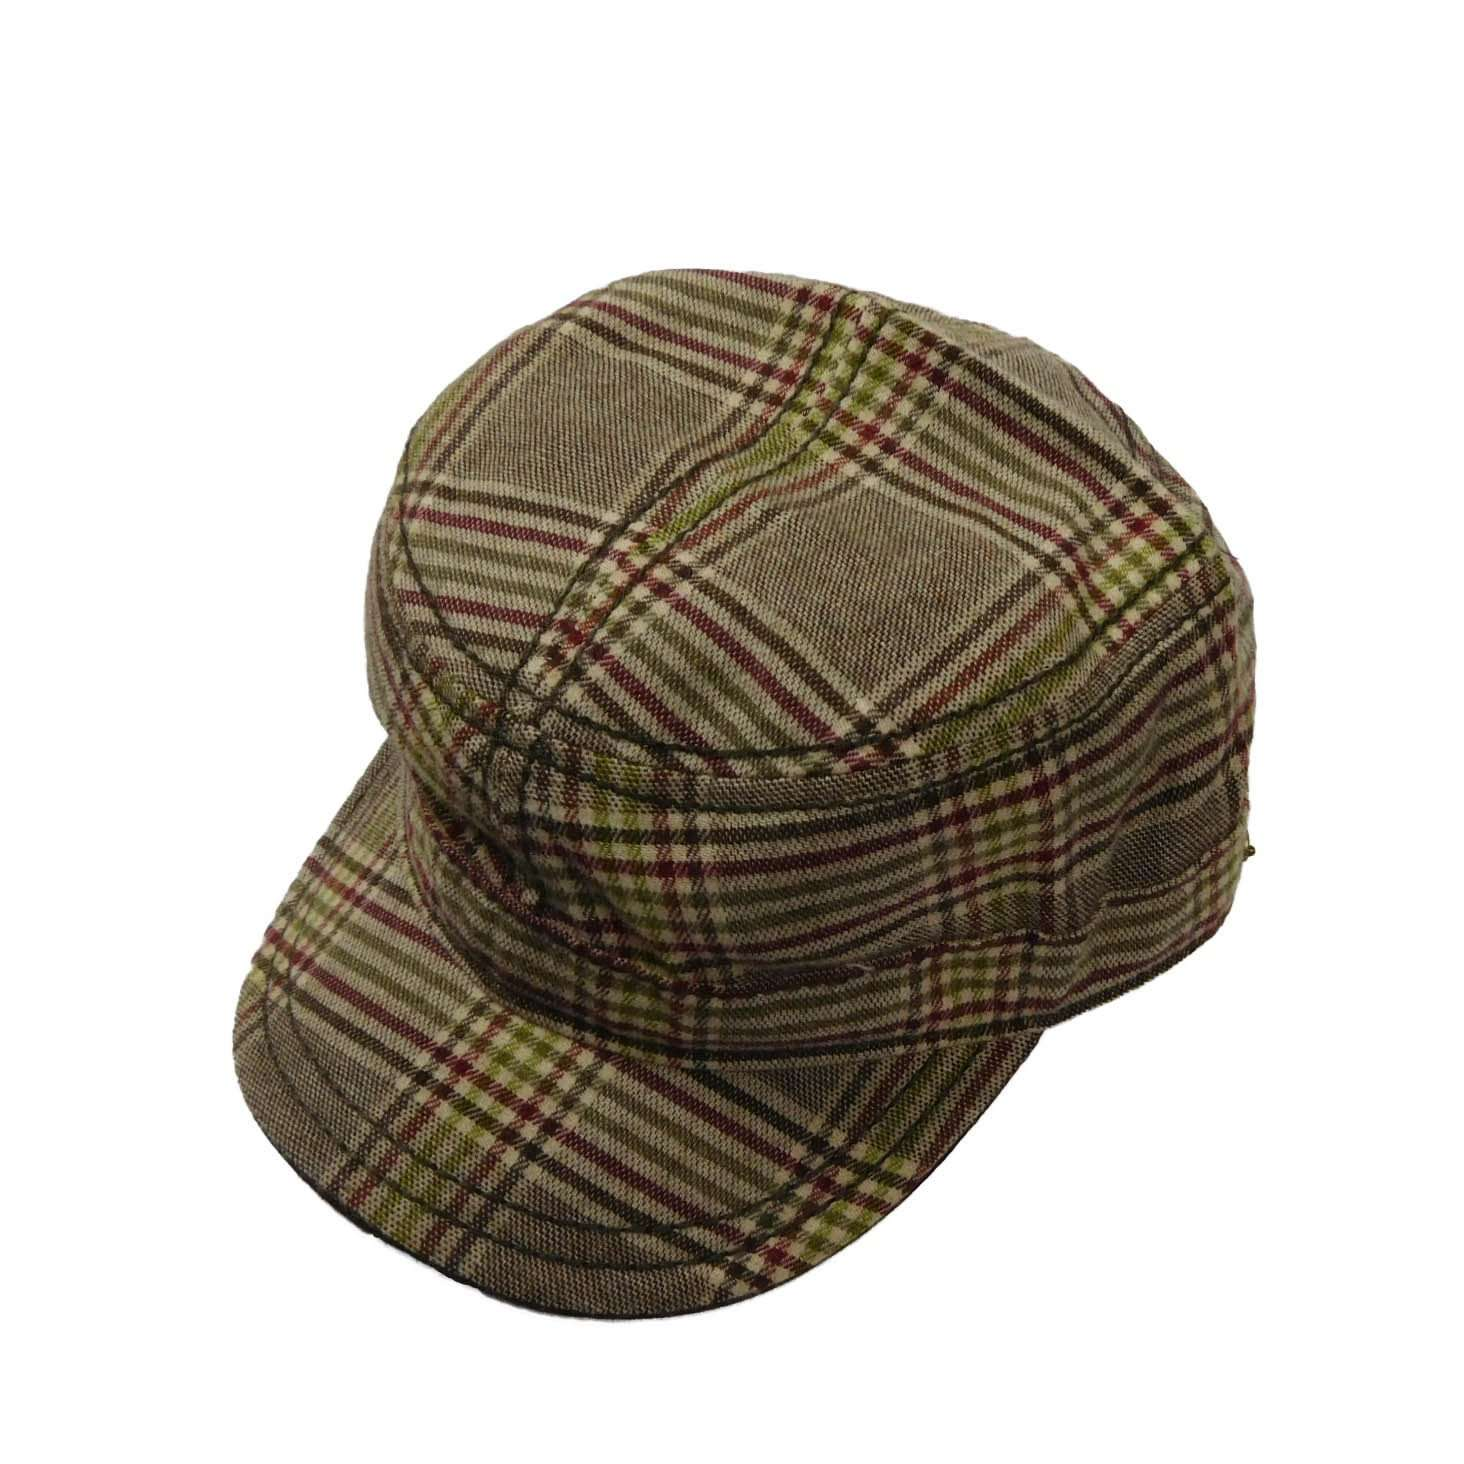 72f730452a9 Stetson Plaid Unisex Cadet Cap - 2016 Holiday Gift Sale